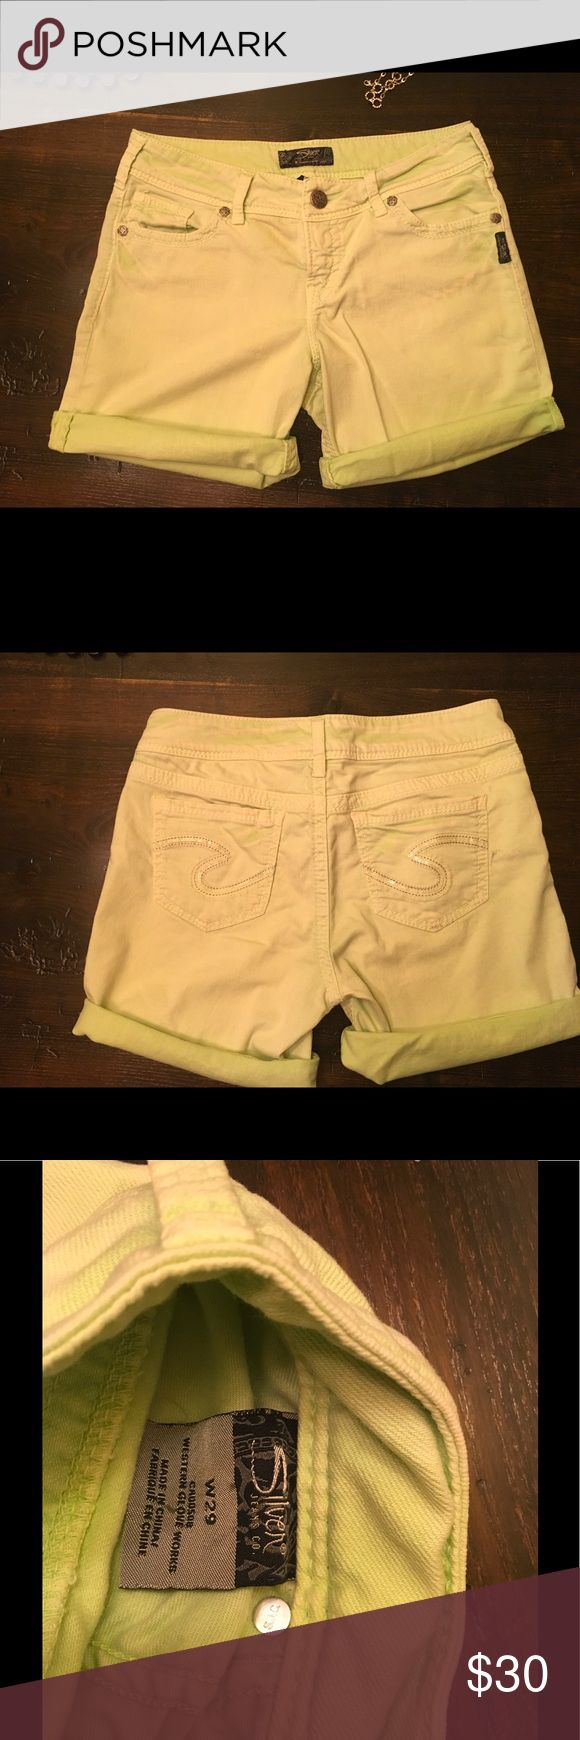 Silver Jeans Suki Lime Green Shorts Size 29 I bought last year and only wore a couple of times. The lime green color has a natural distressed washed look to it which is adorable.  No trades but feel free to make offer 😀 Silver Jeans Shorts Jean Shorts